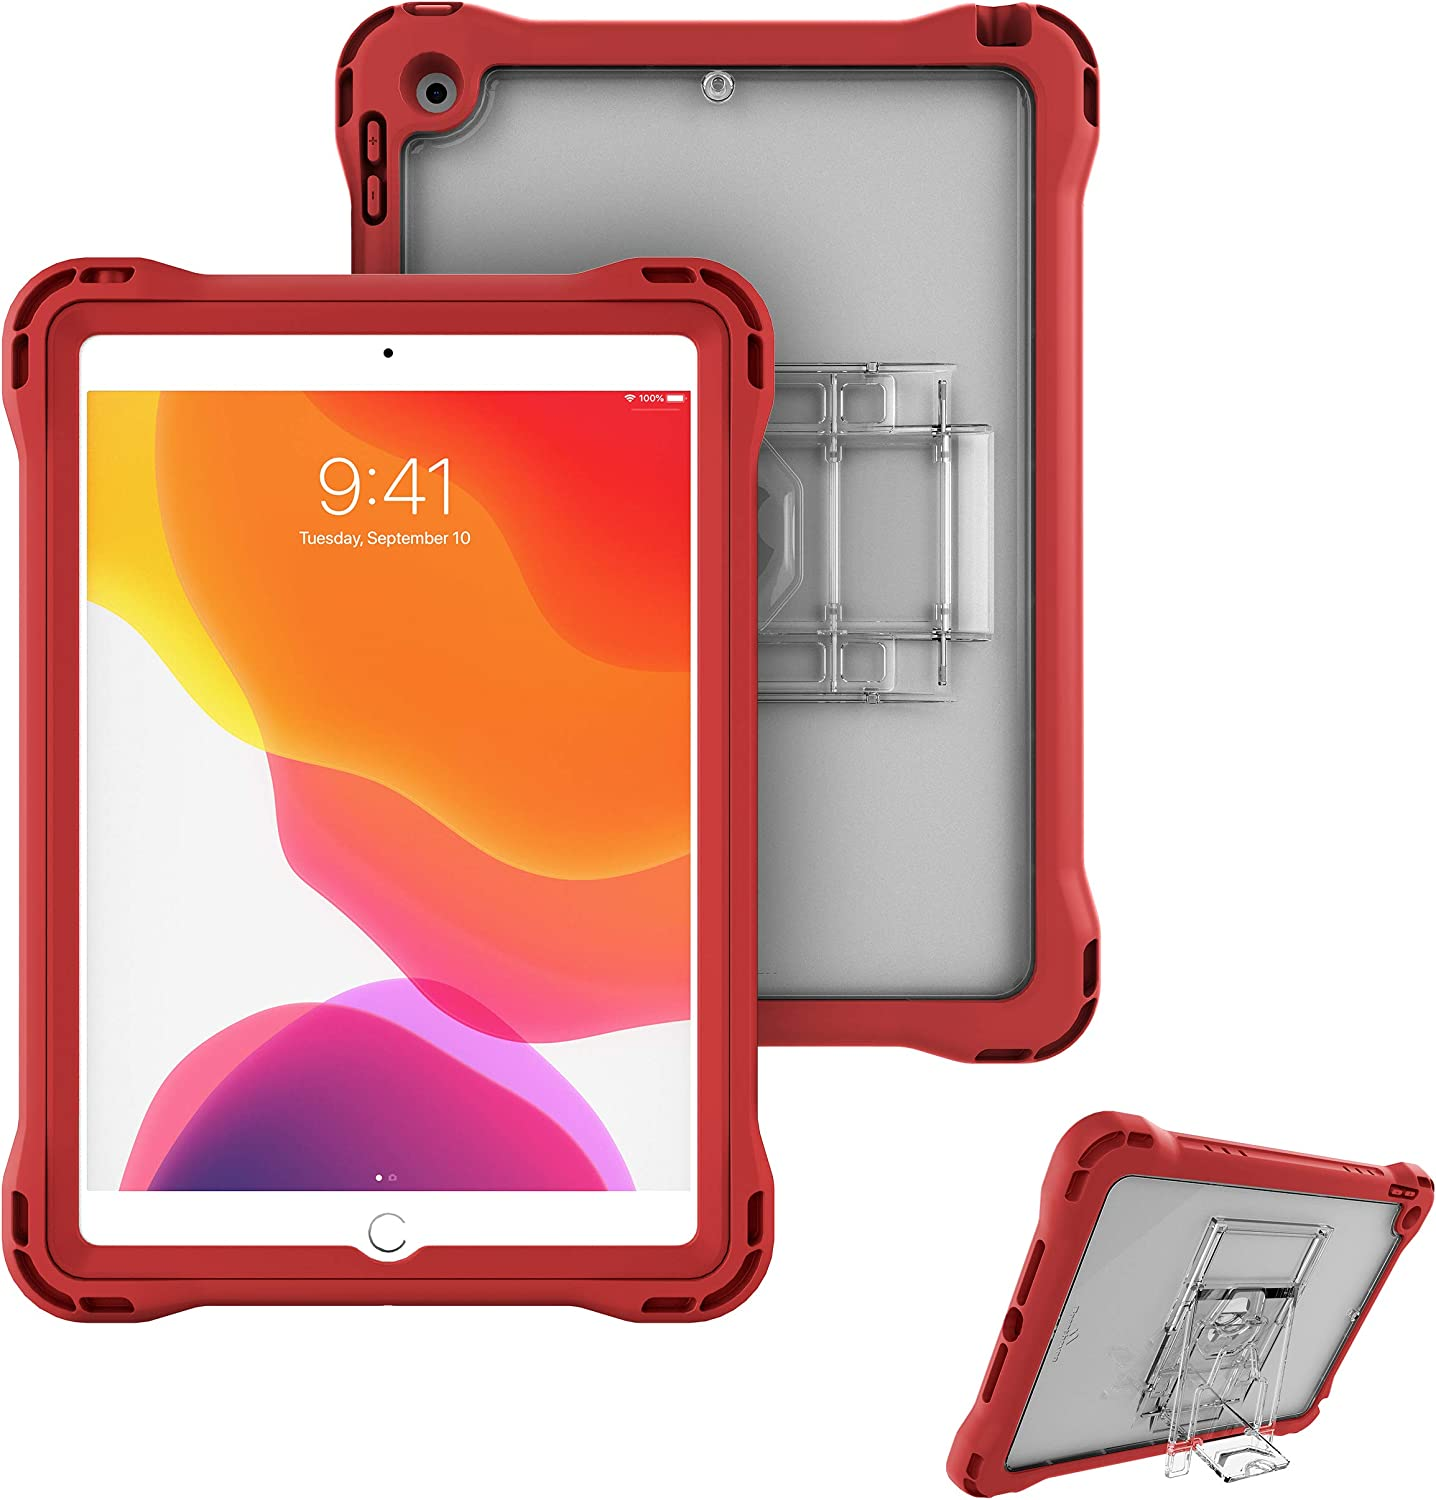 Brenthaven Edge 360 Case Designed for The New Apple iPad 10.2 7th and 8th Gen (2020) for School and Office Use - Durable, Rugged Protection with Stand and Screen Shield (Pen Holder Sold Separately)